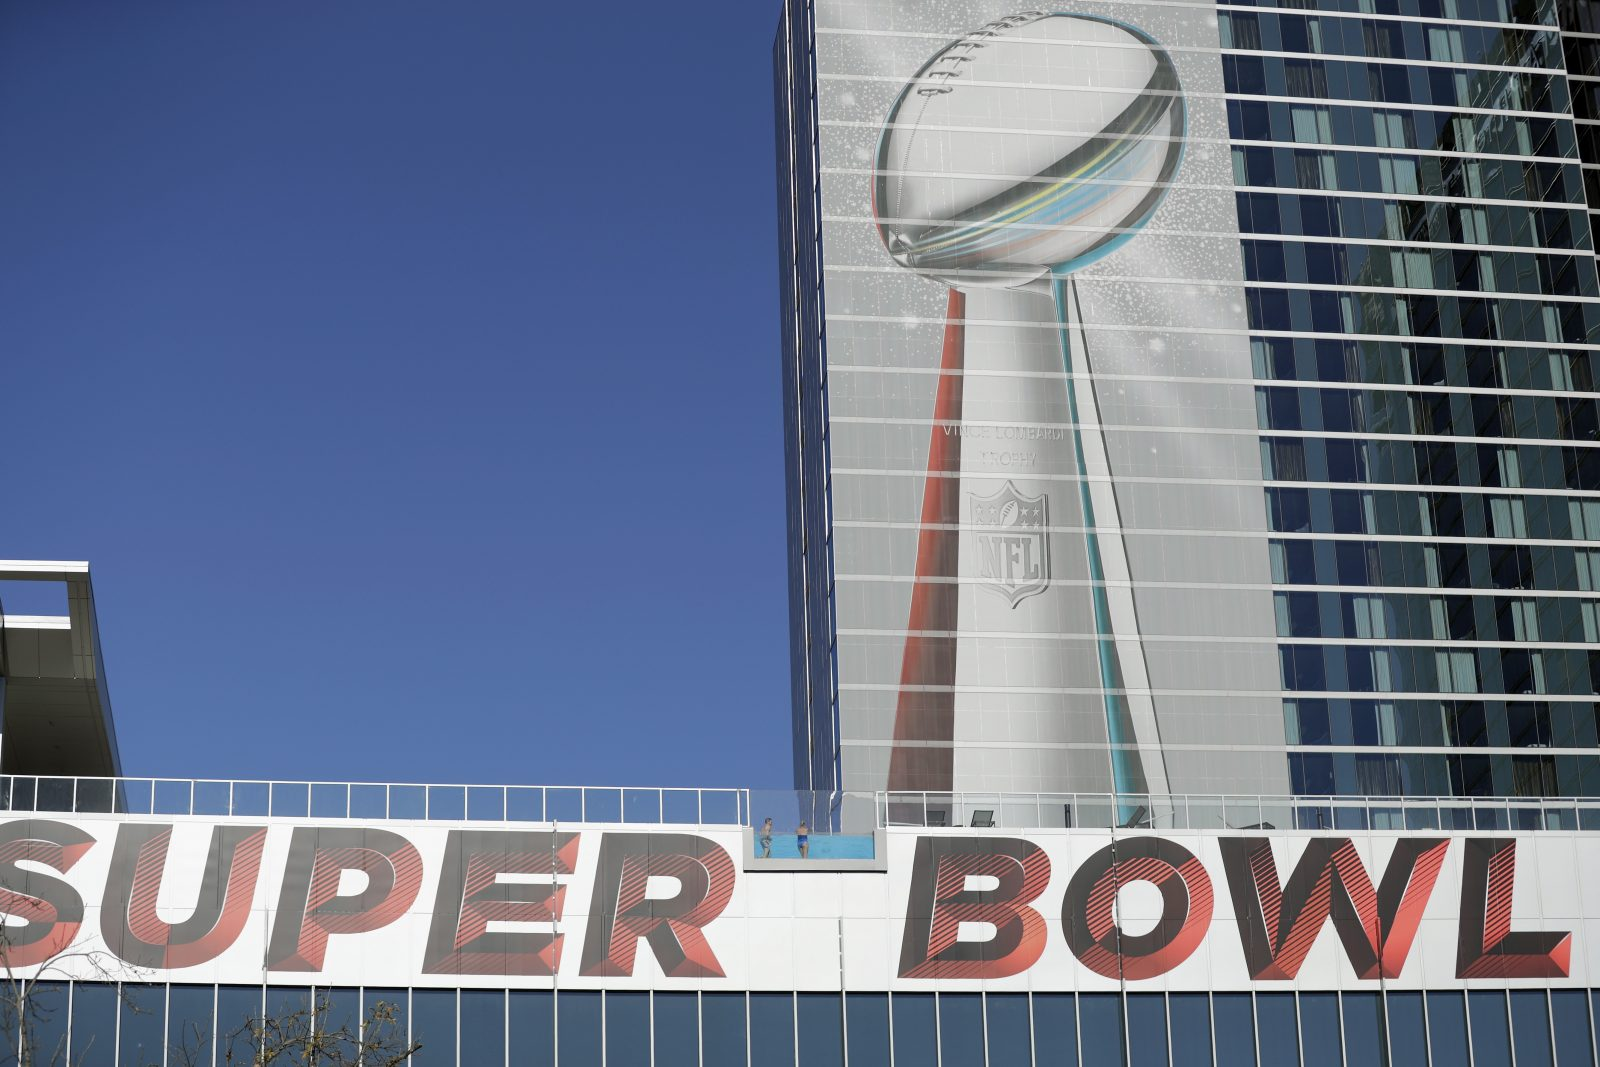 This Sunday's Super Bowl telecast could be an advertising bonanza for WUTV. (Tim Warner/Getty Images)